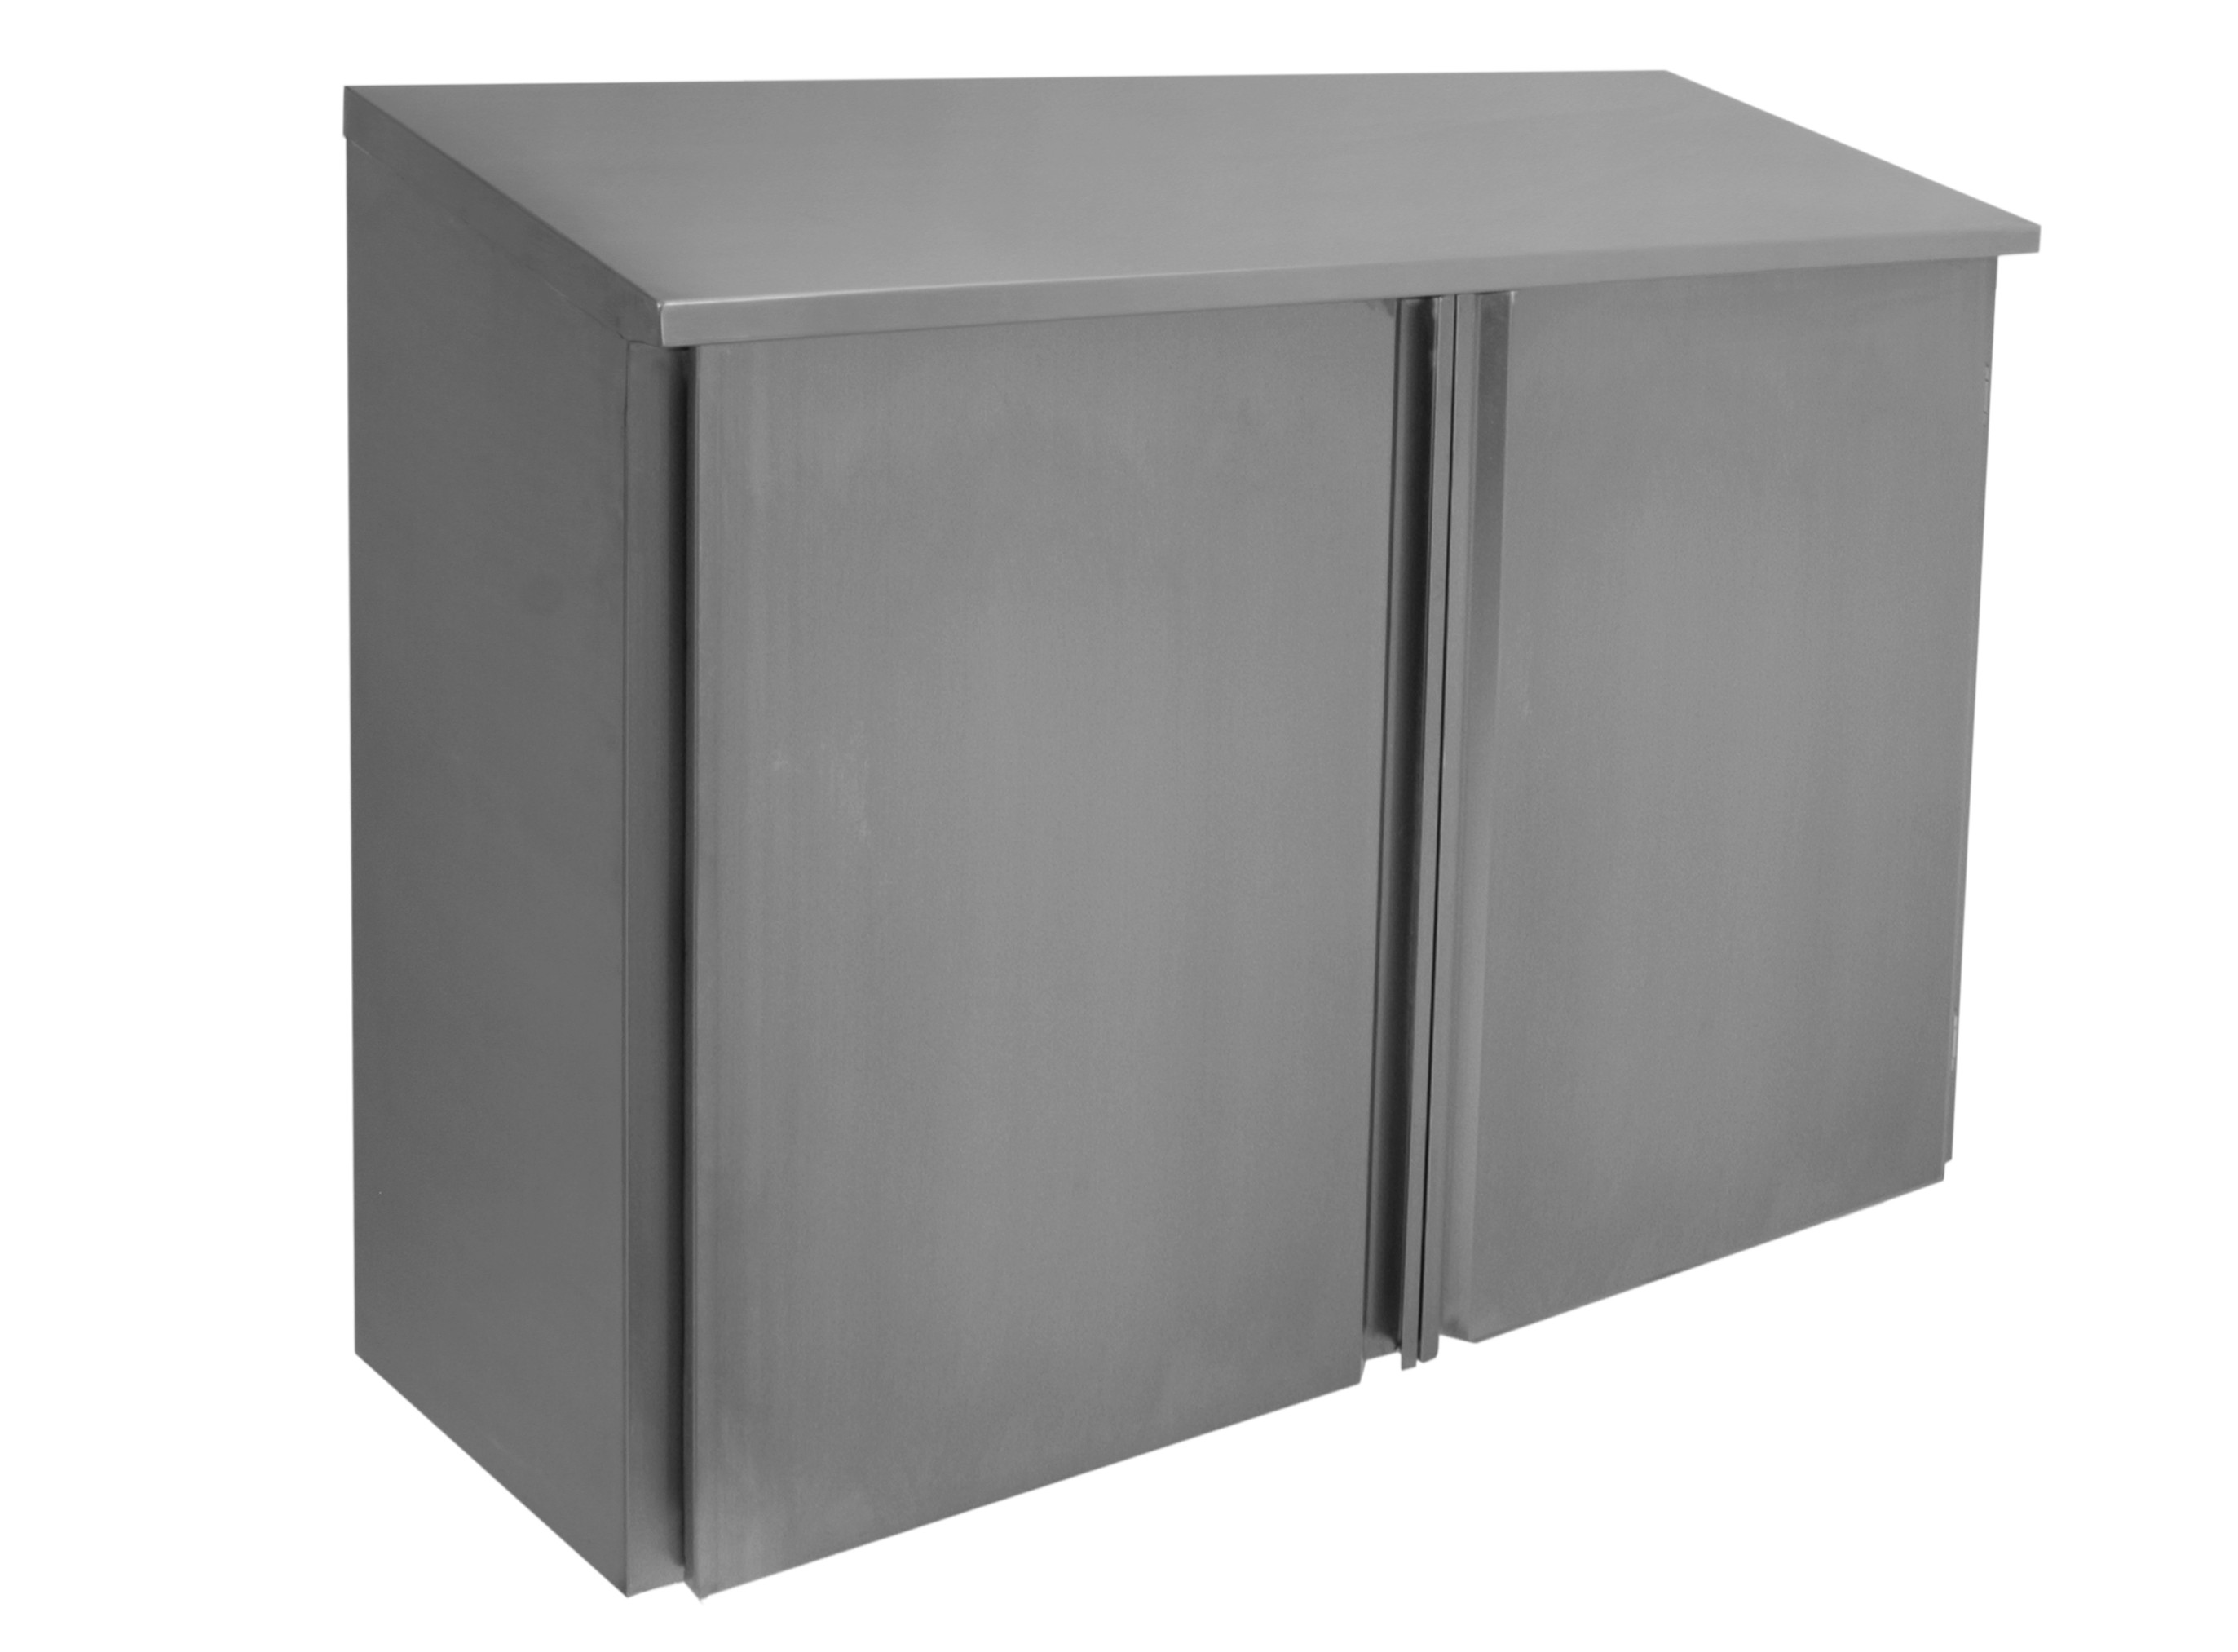 Stainless Steel Slope Top Wall Cabinets   Hinged Doors